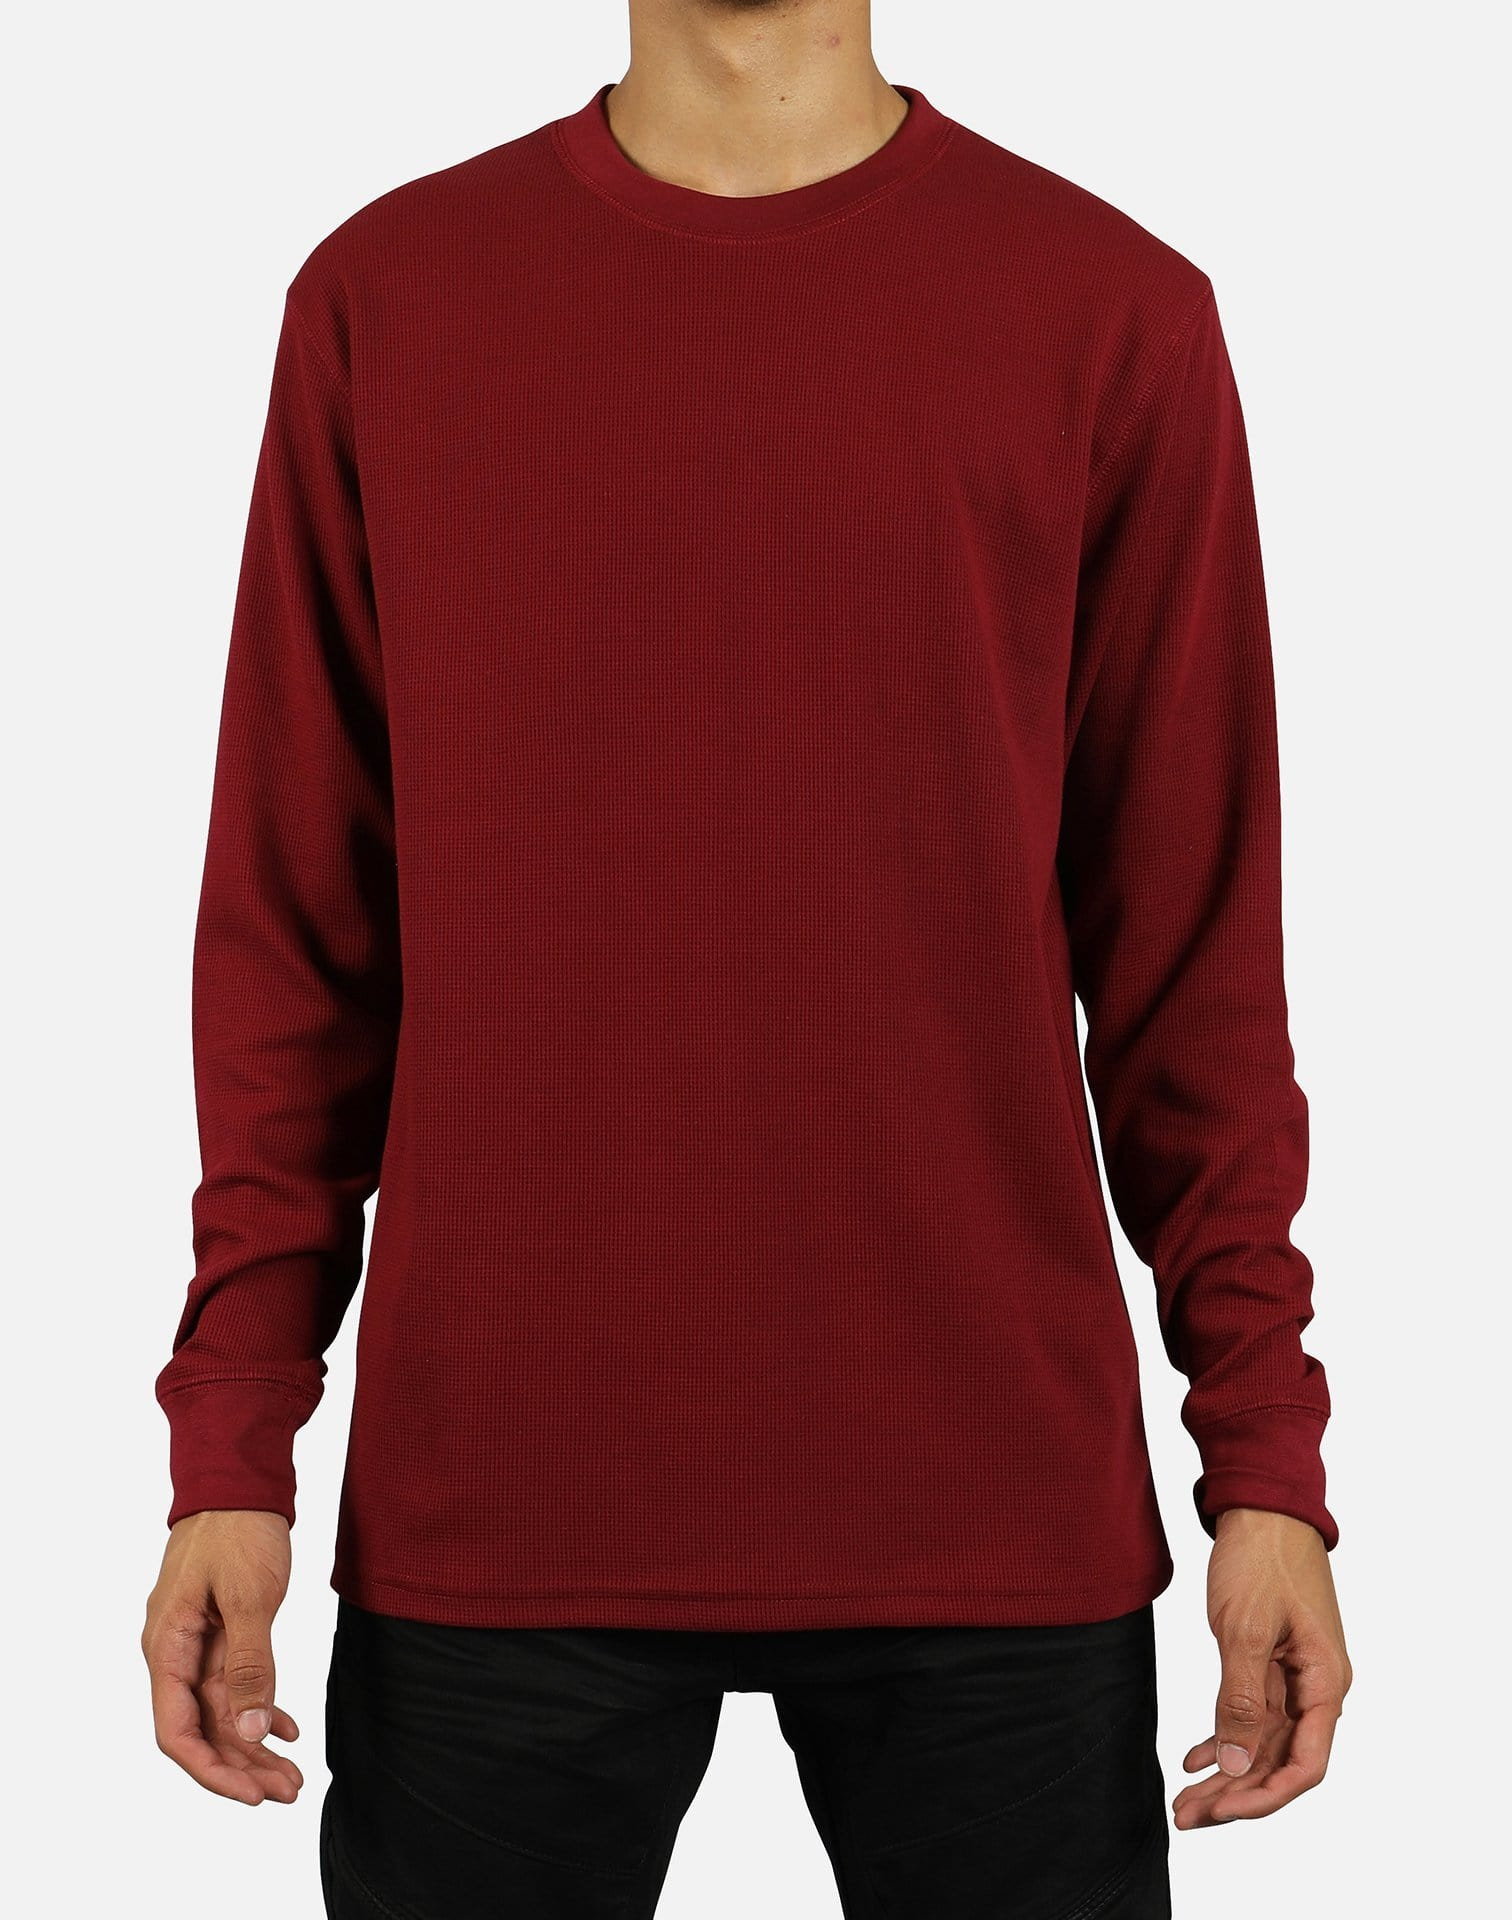 City Lab Men's Classic Thermal Shirt